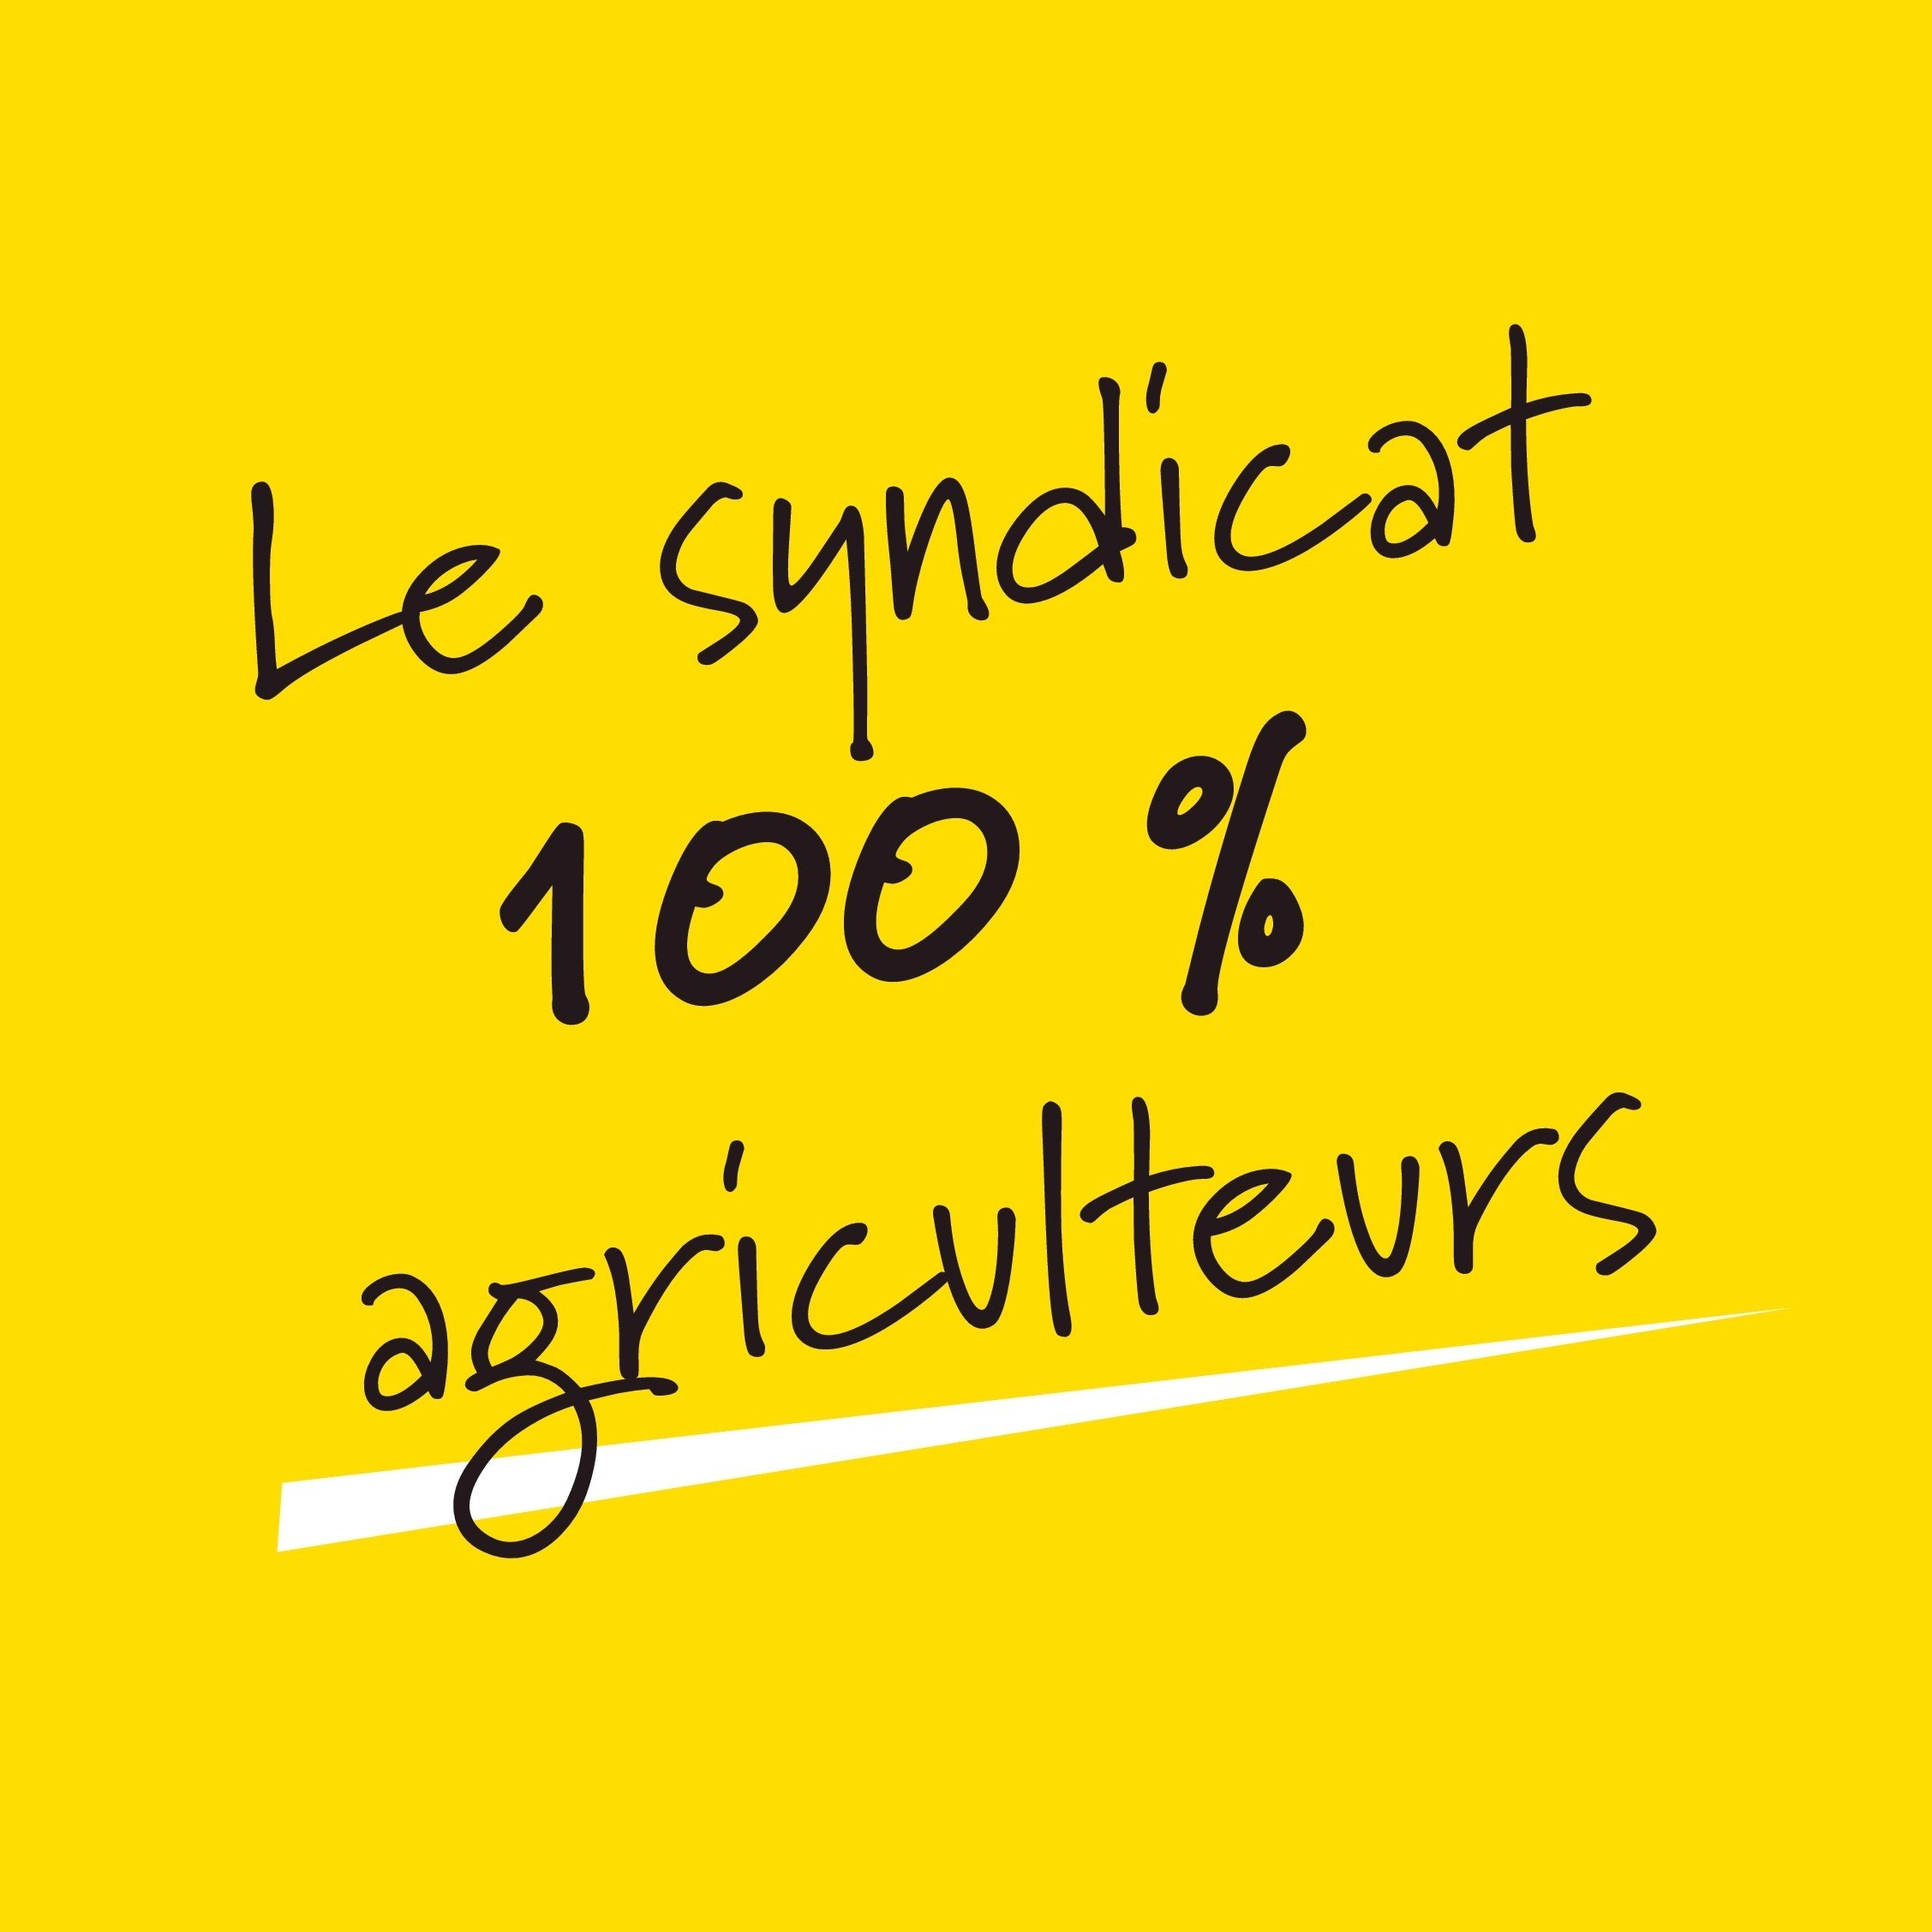 100% agriculteurs